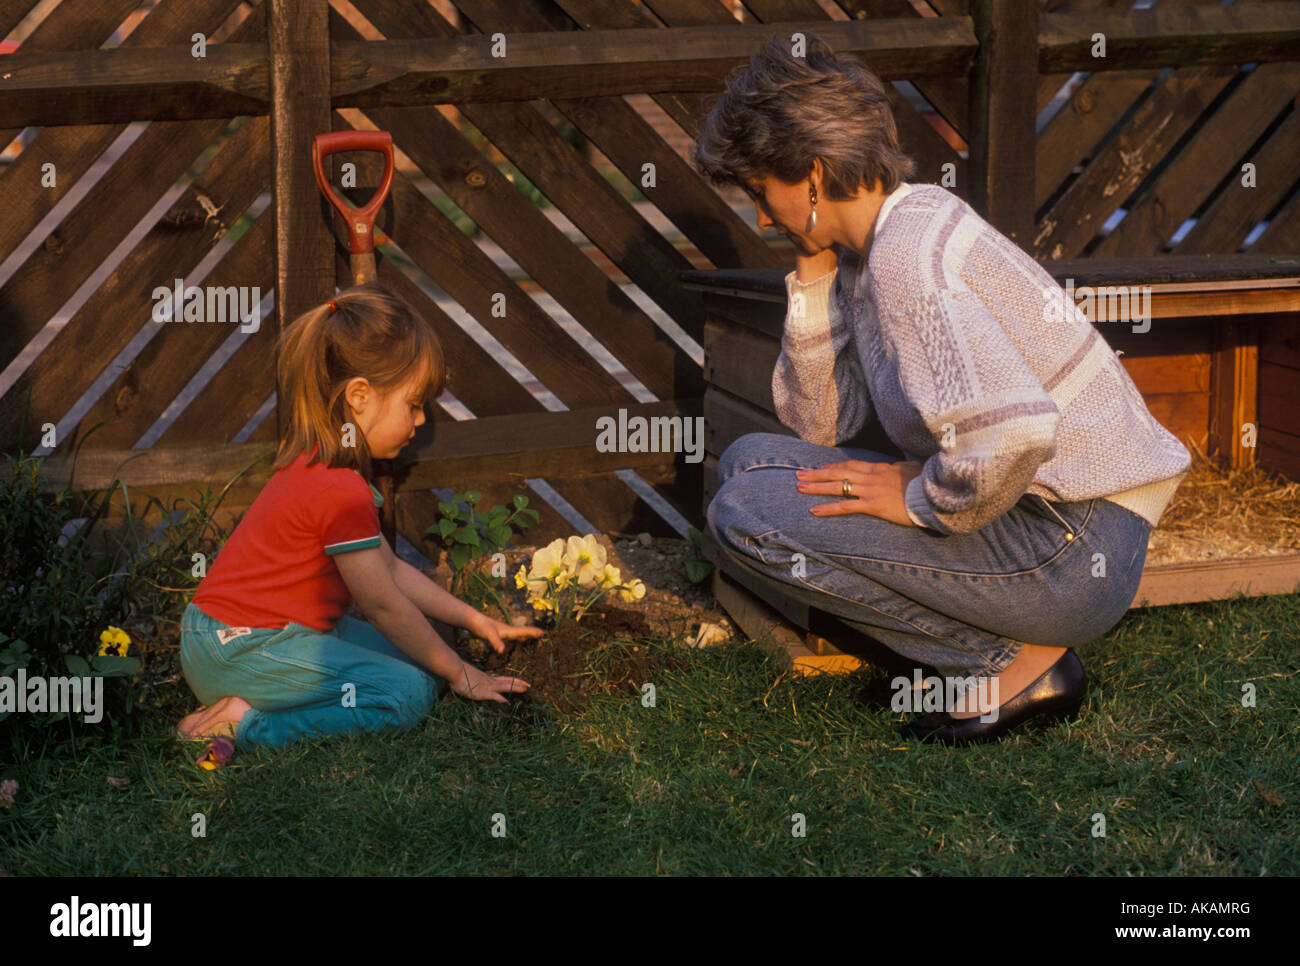 mother and daughter burying a pet - Stock Image